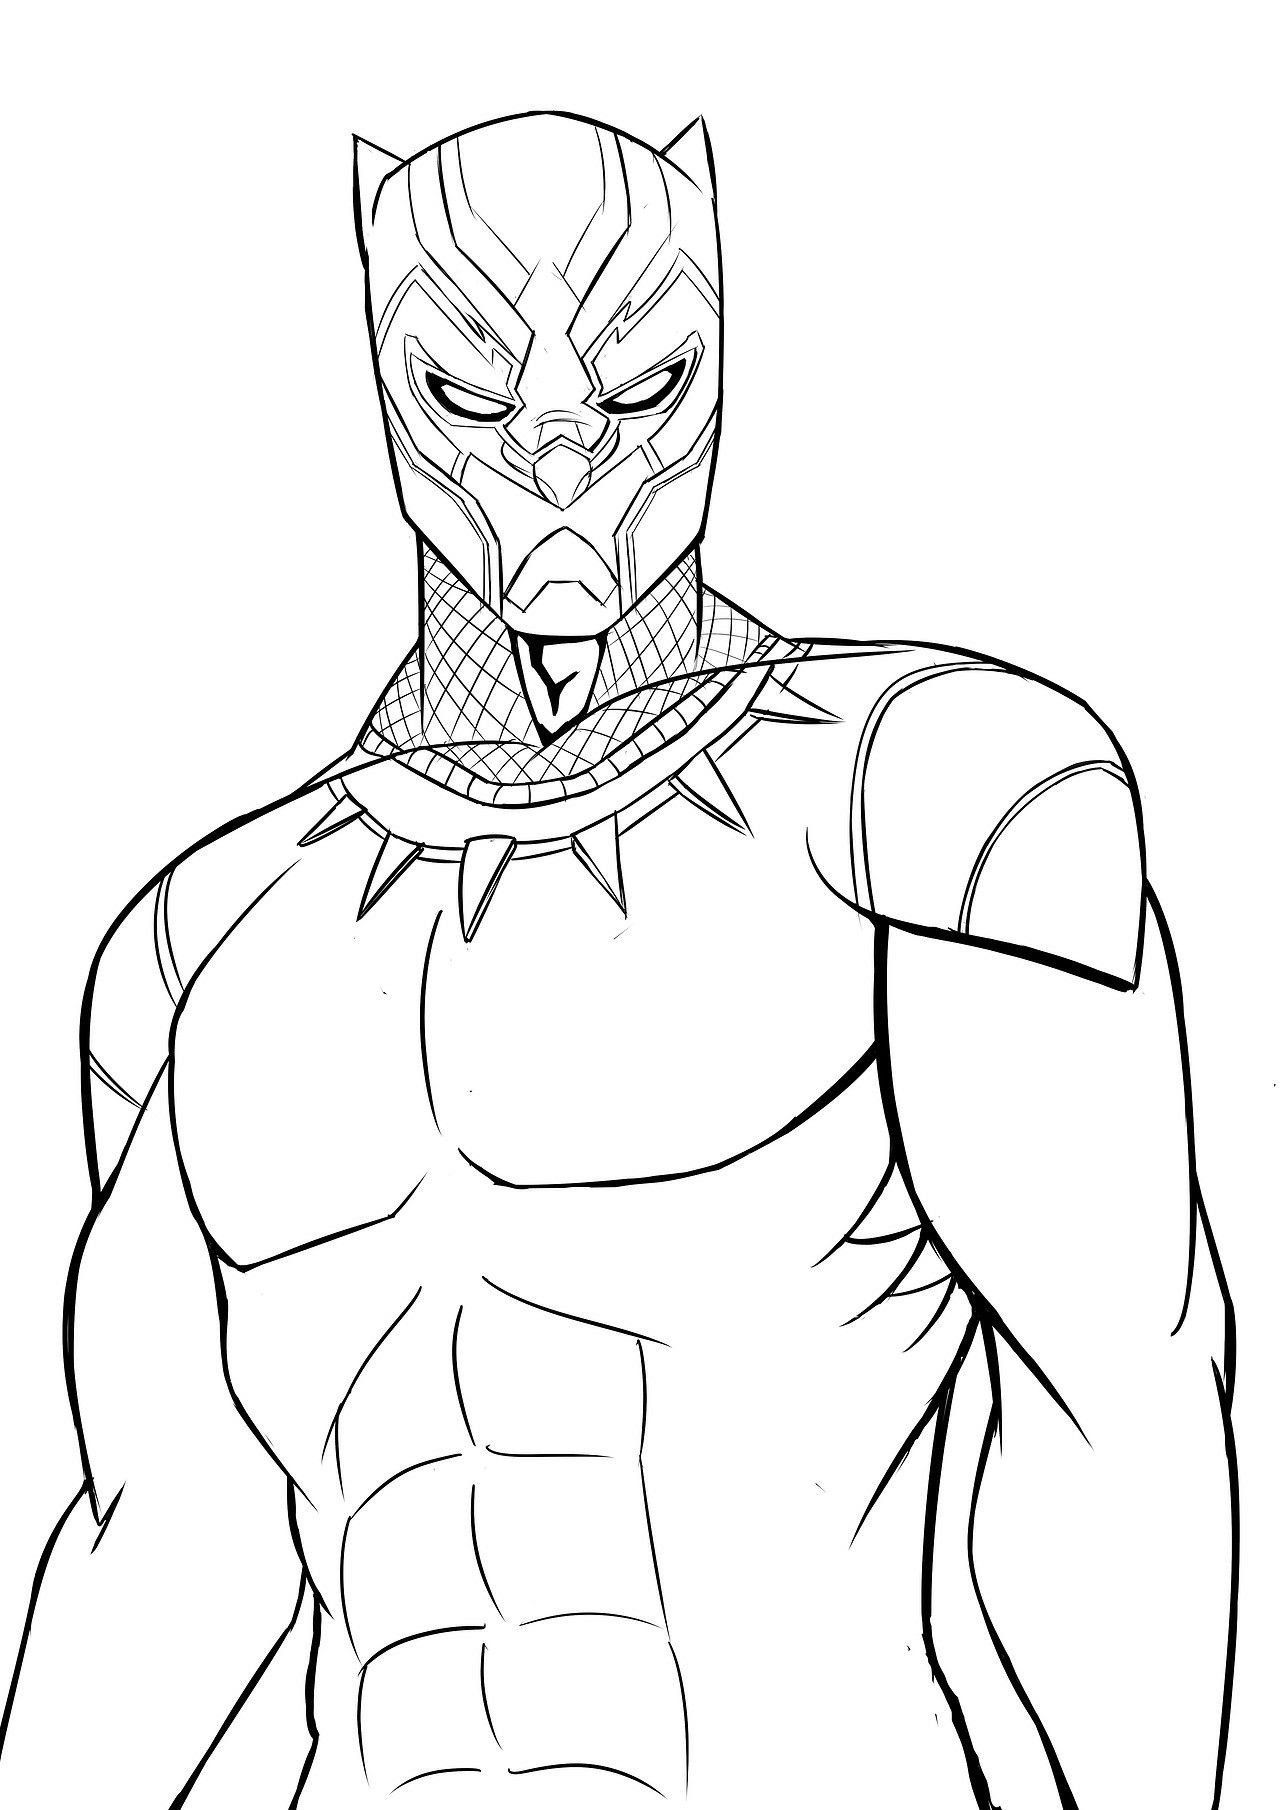 Captain America Coloring Pages Inspirational Black Panther Black White Art Black Panther Superhero Coloring Pages Avengers Coloring Pages Superhero Coloring